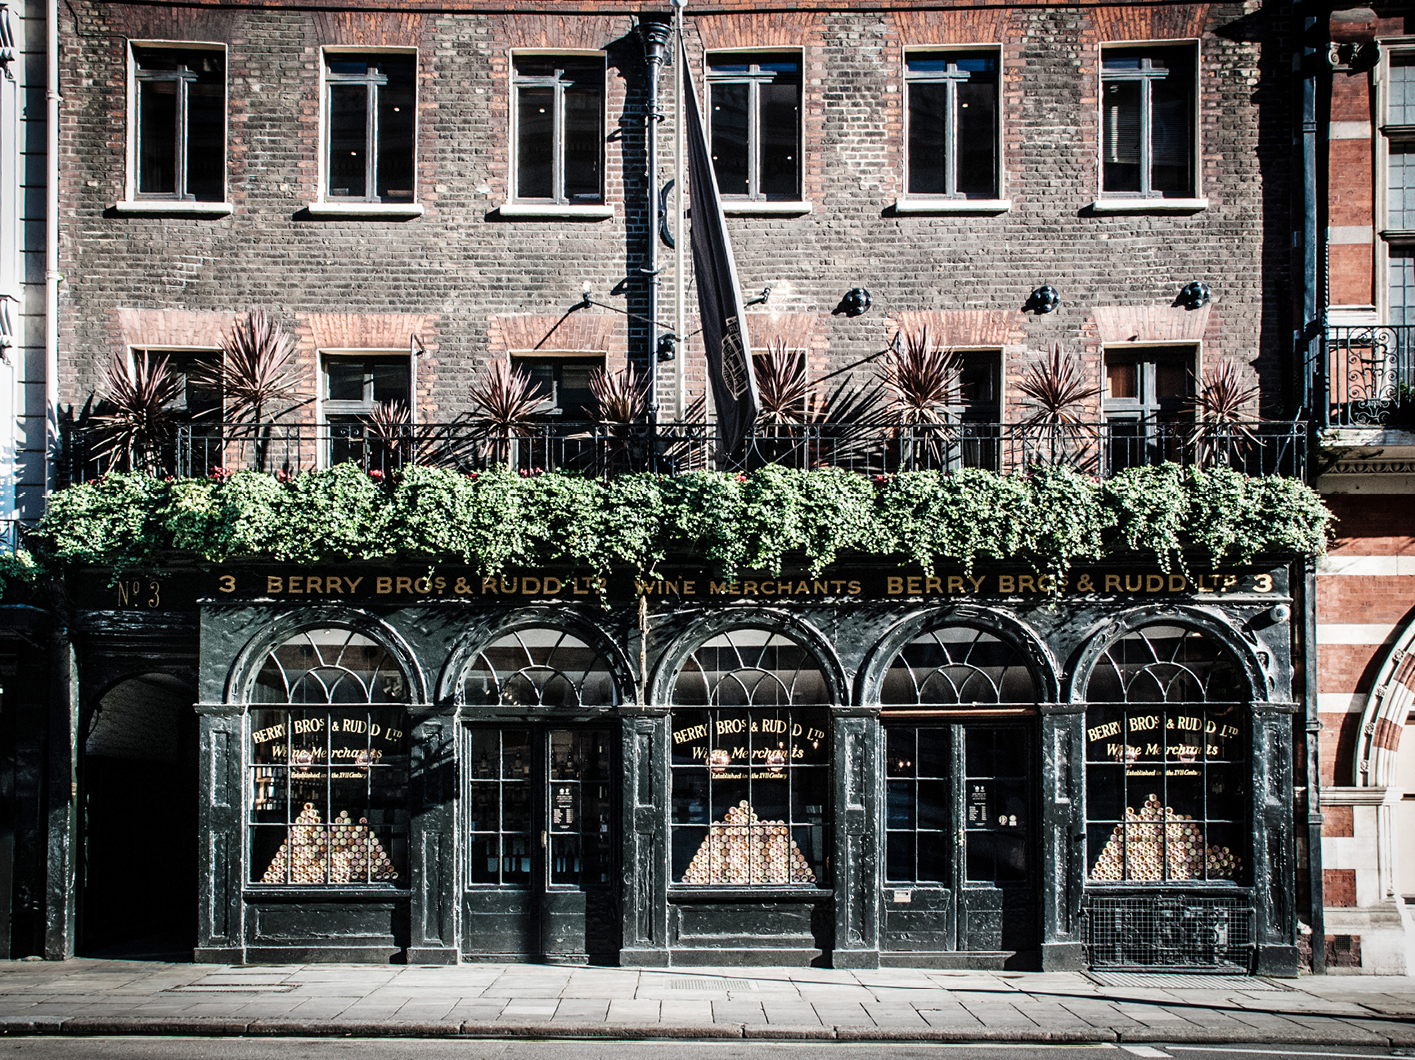 No. 3 St James's Street, London, has been the home of Berry Bros & Rudd since 1698